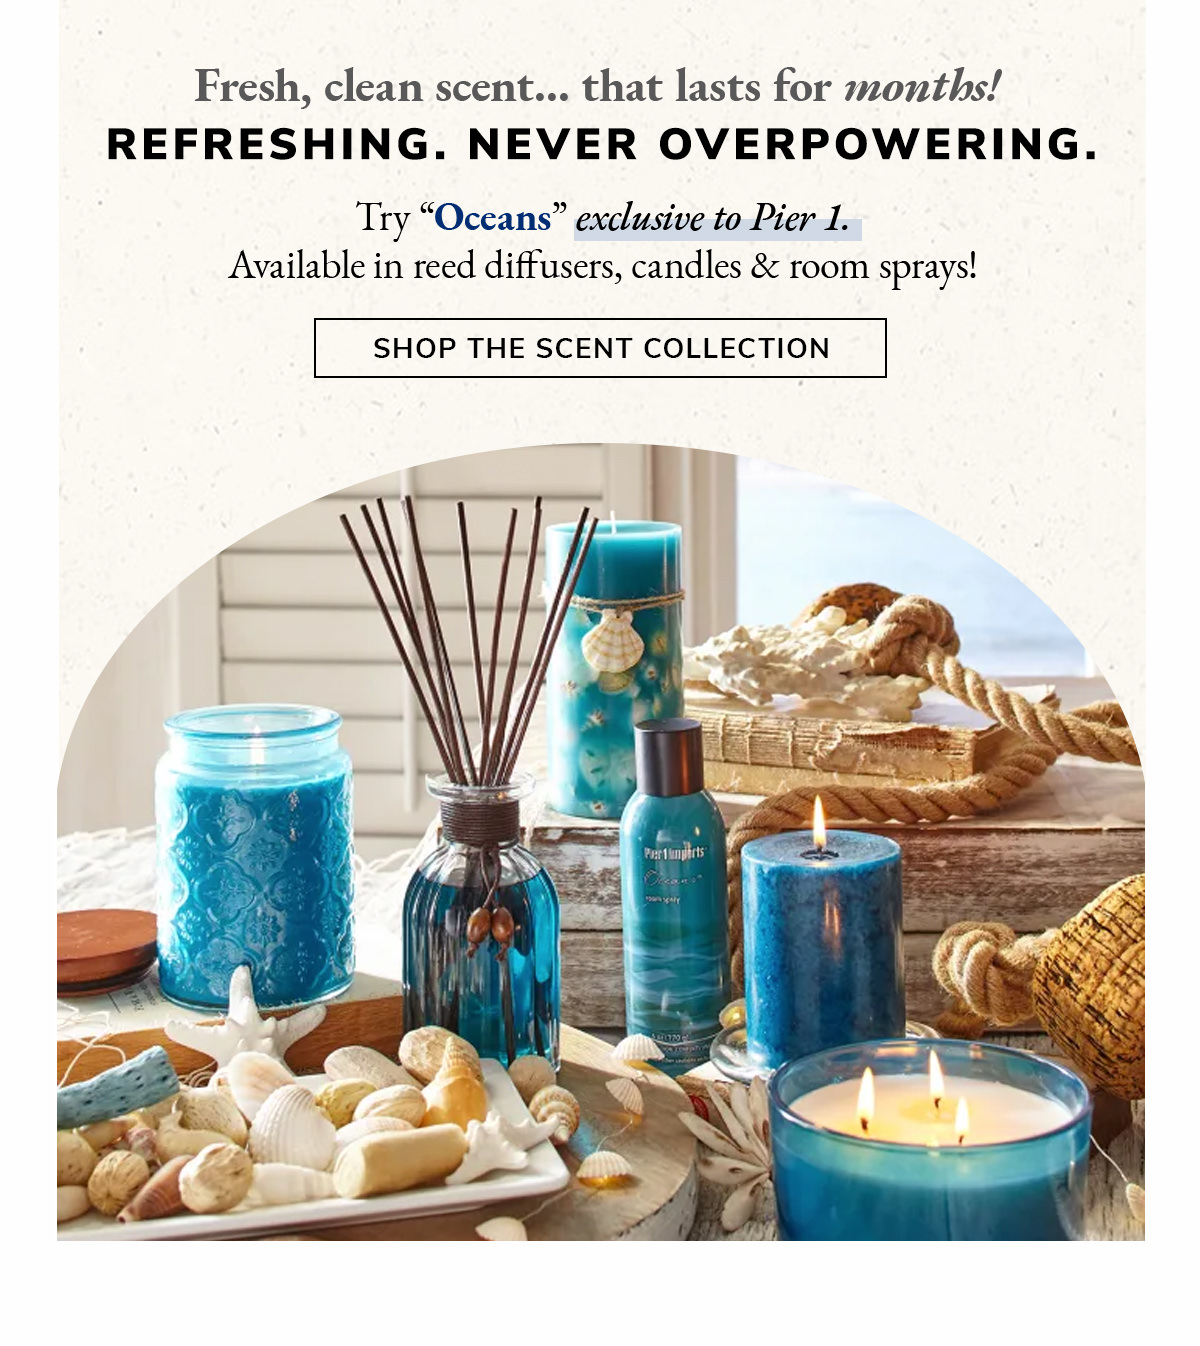 Fresh, clean scent...that lasts for months! Try 'Oceans', exclusive to Pier 1. | SHOP THE SCENT COLLECTION